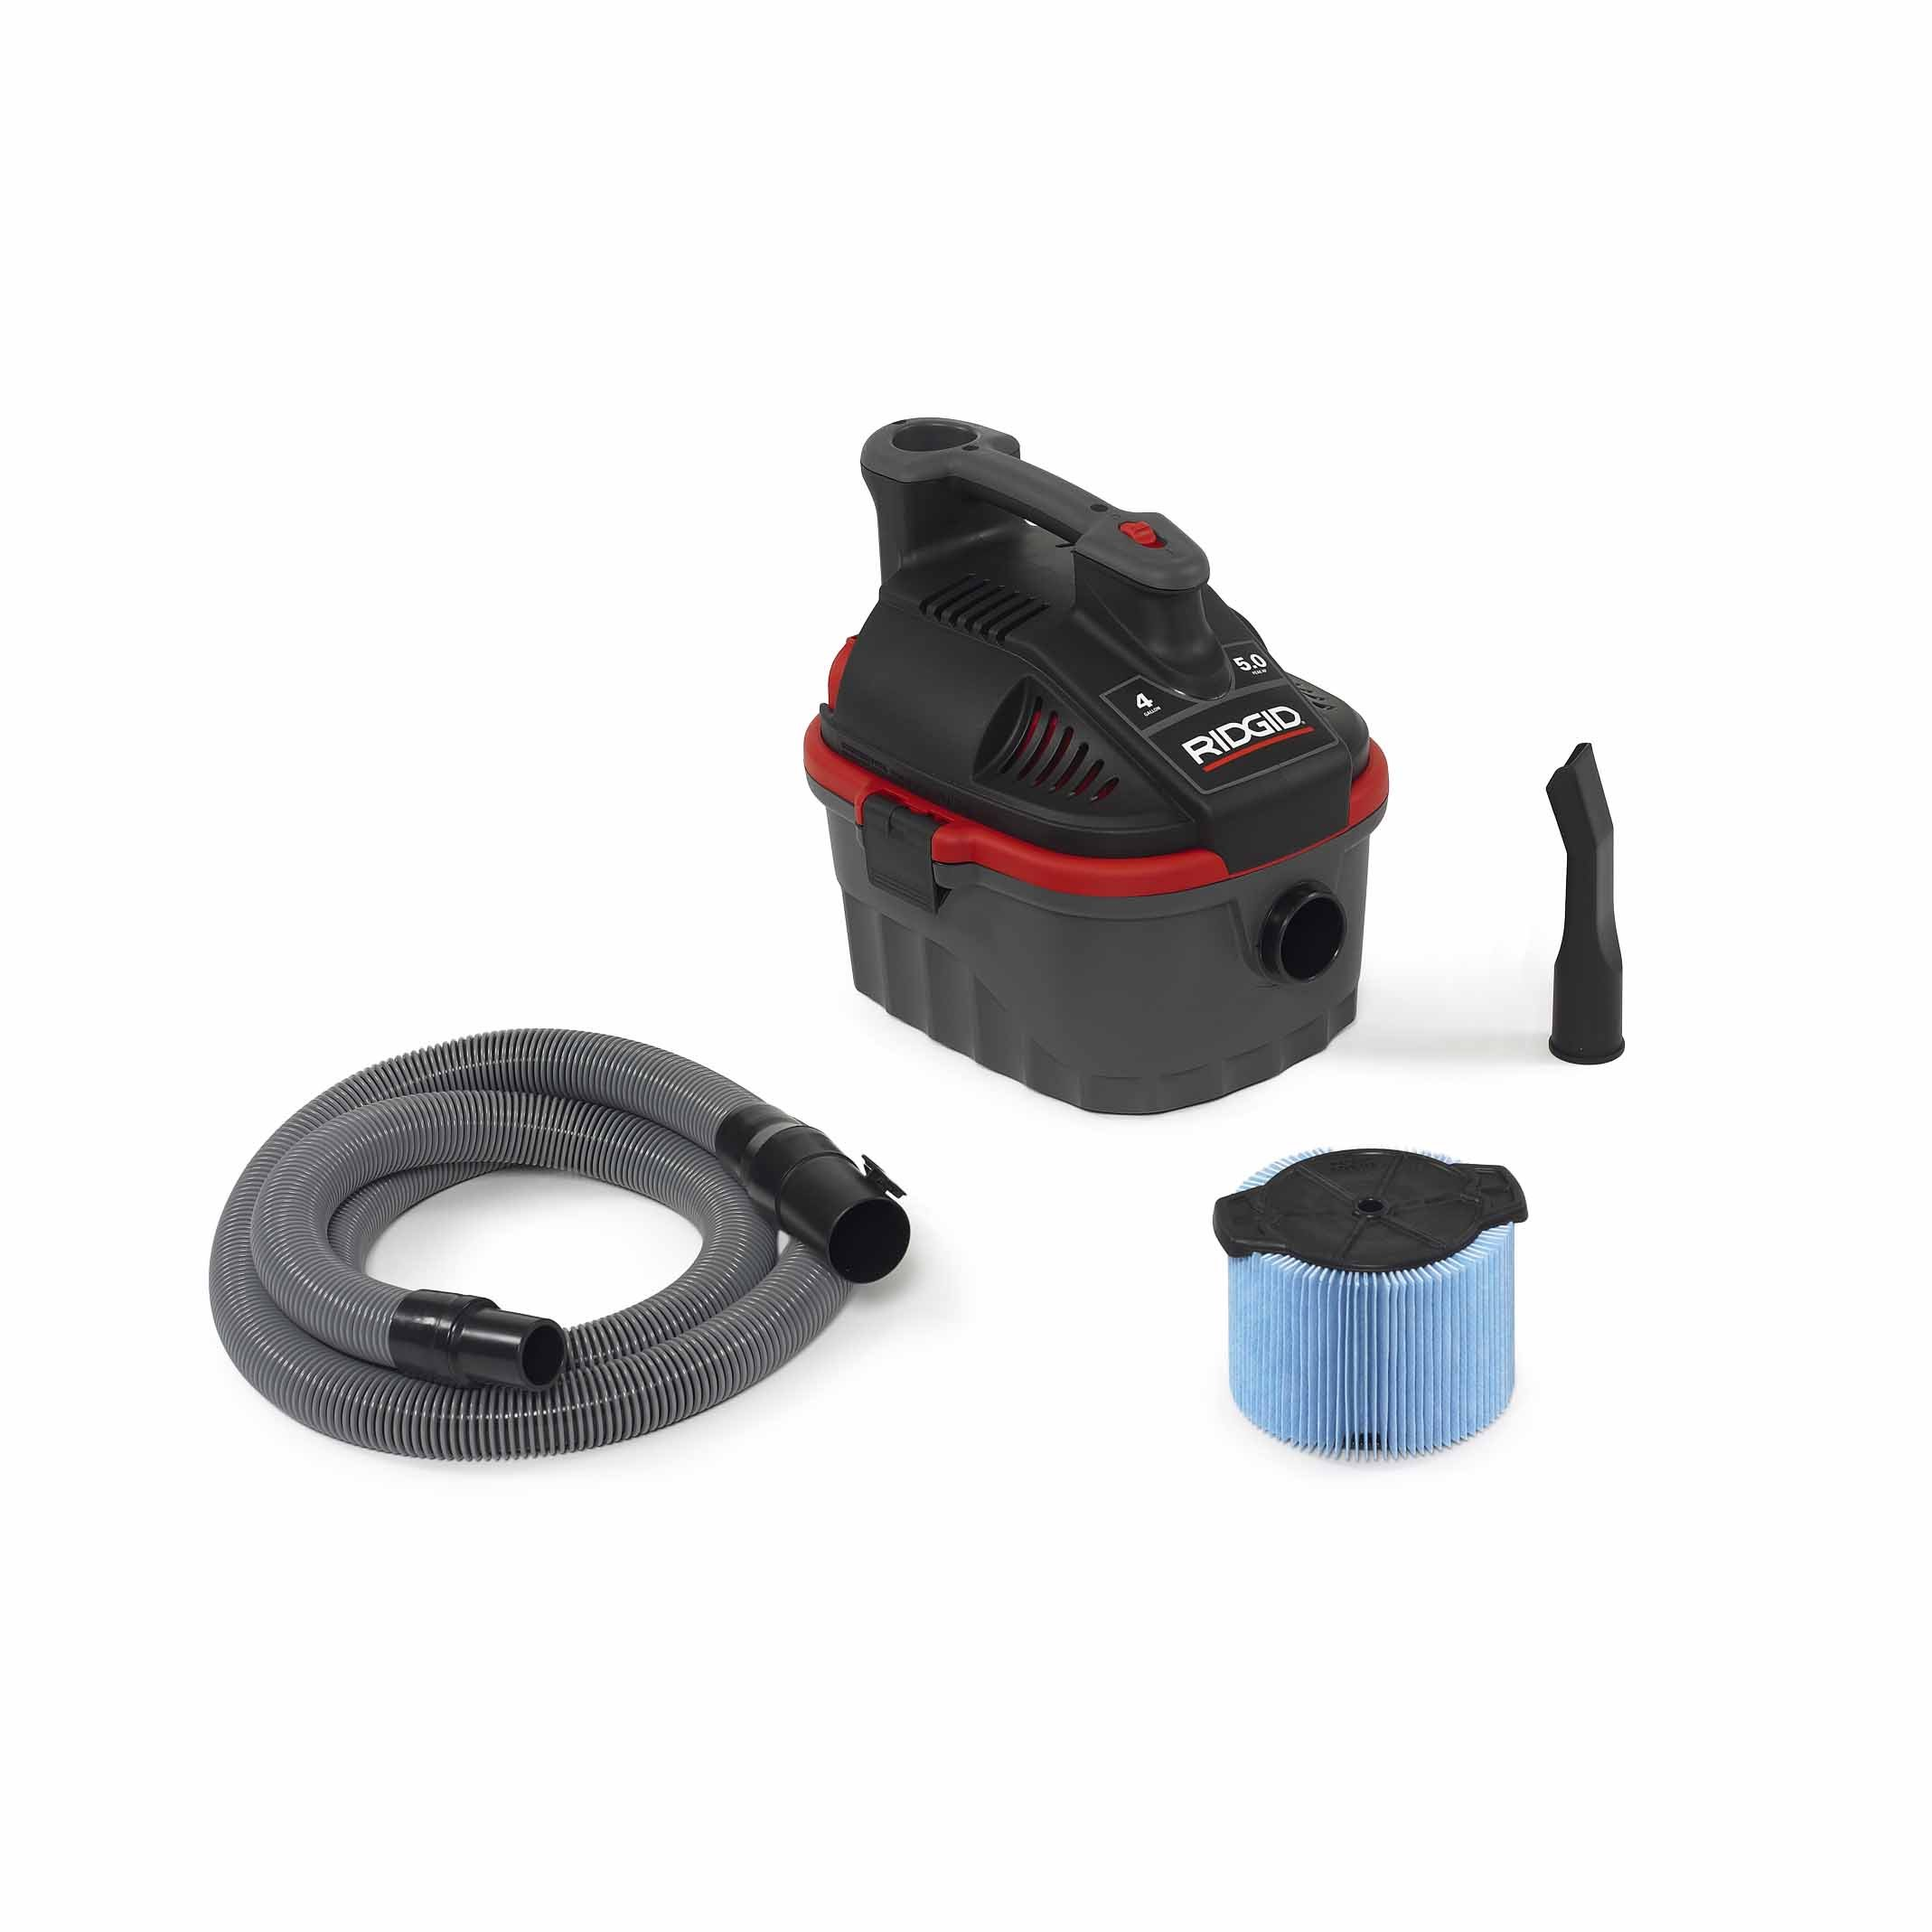 Ridgid 50313 4000RV Wet/Dry Vacuum, 4 gal, Red by Ridgid (Image #2)